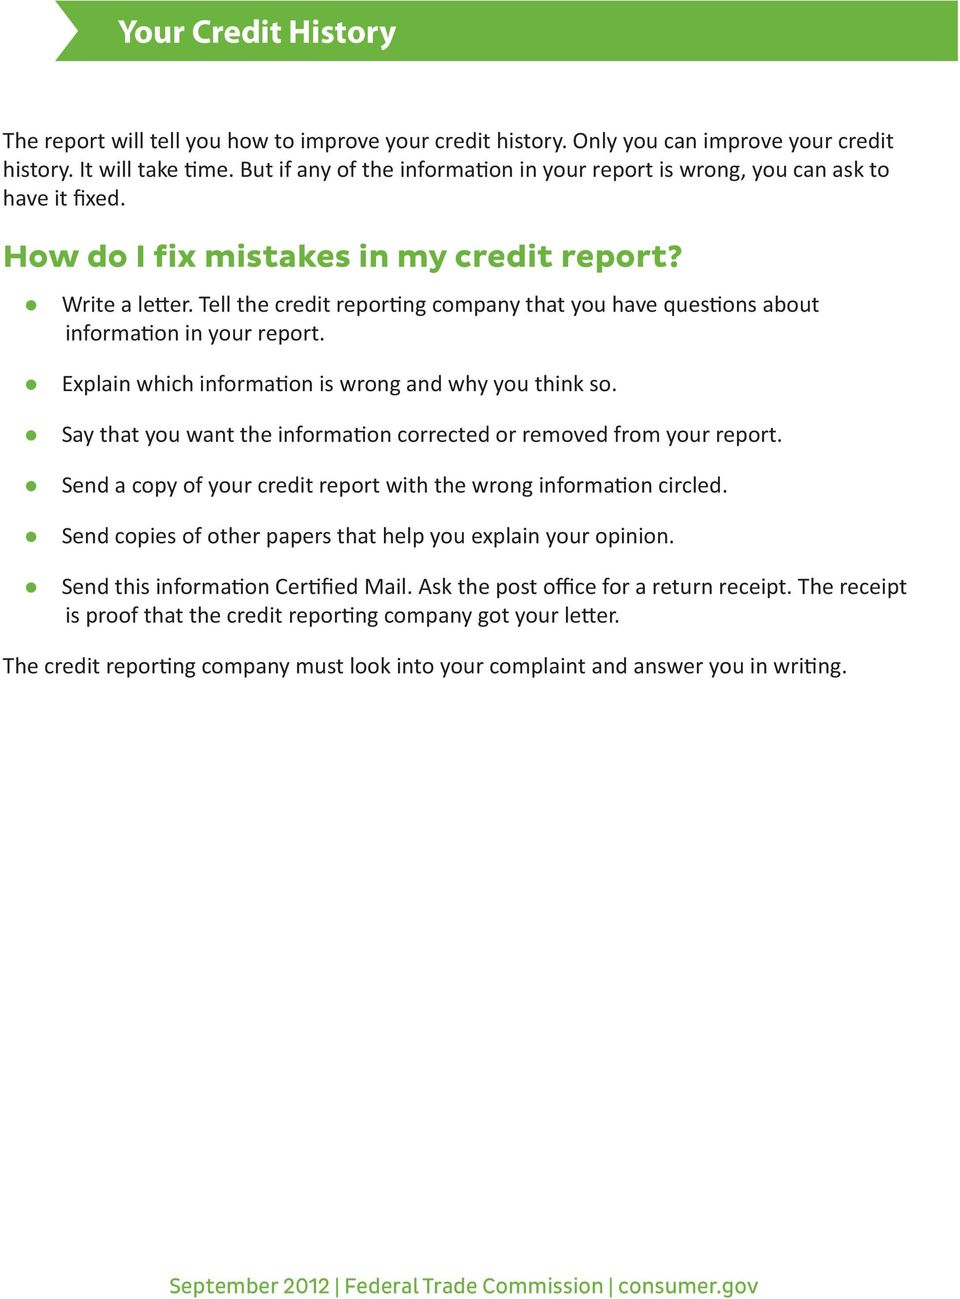 Tell the credit reporting company that you have questions about information in your report. Explain which information is wrong and why you think so.